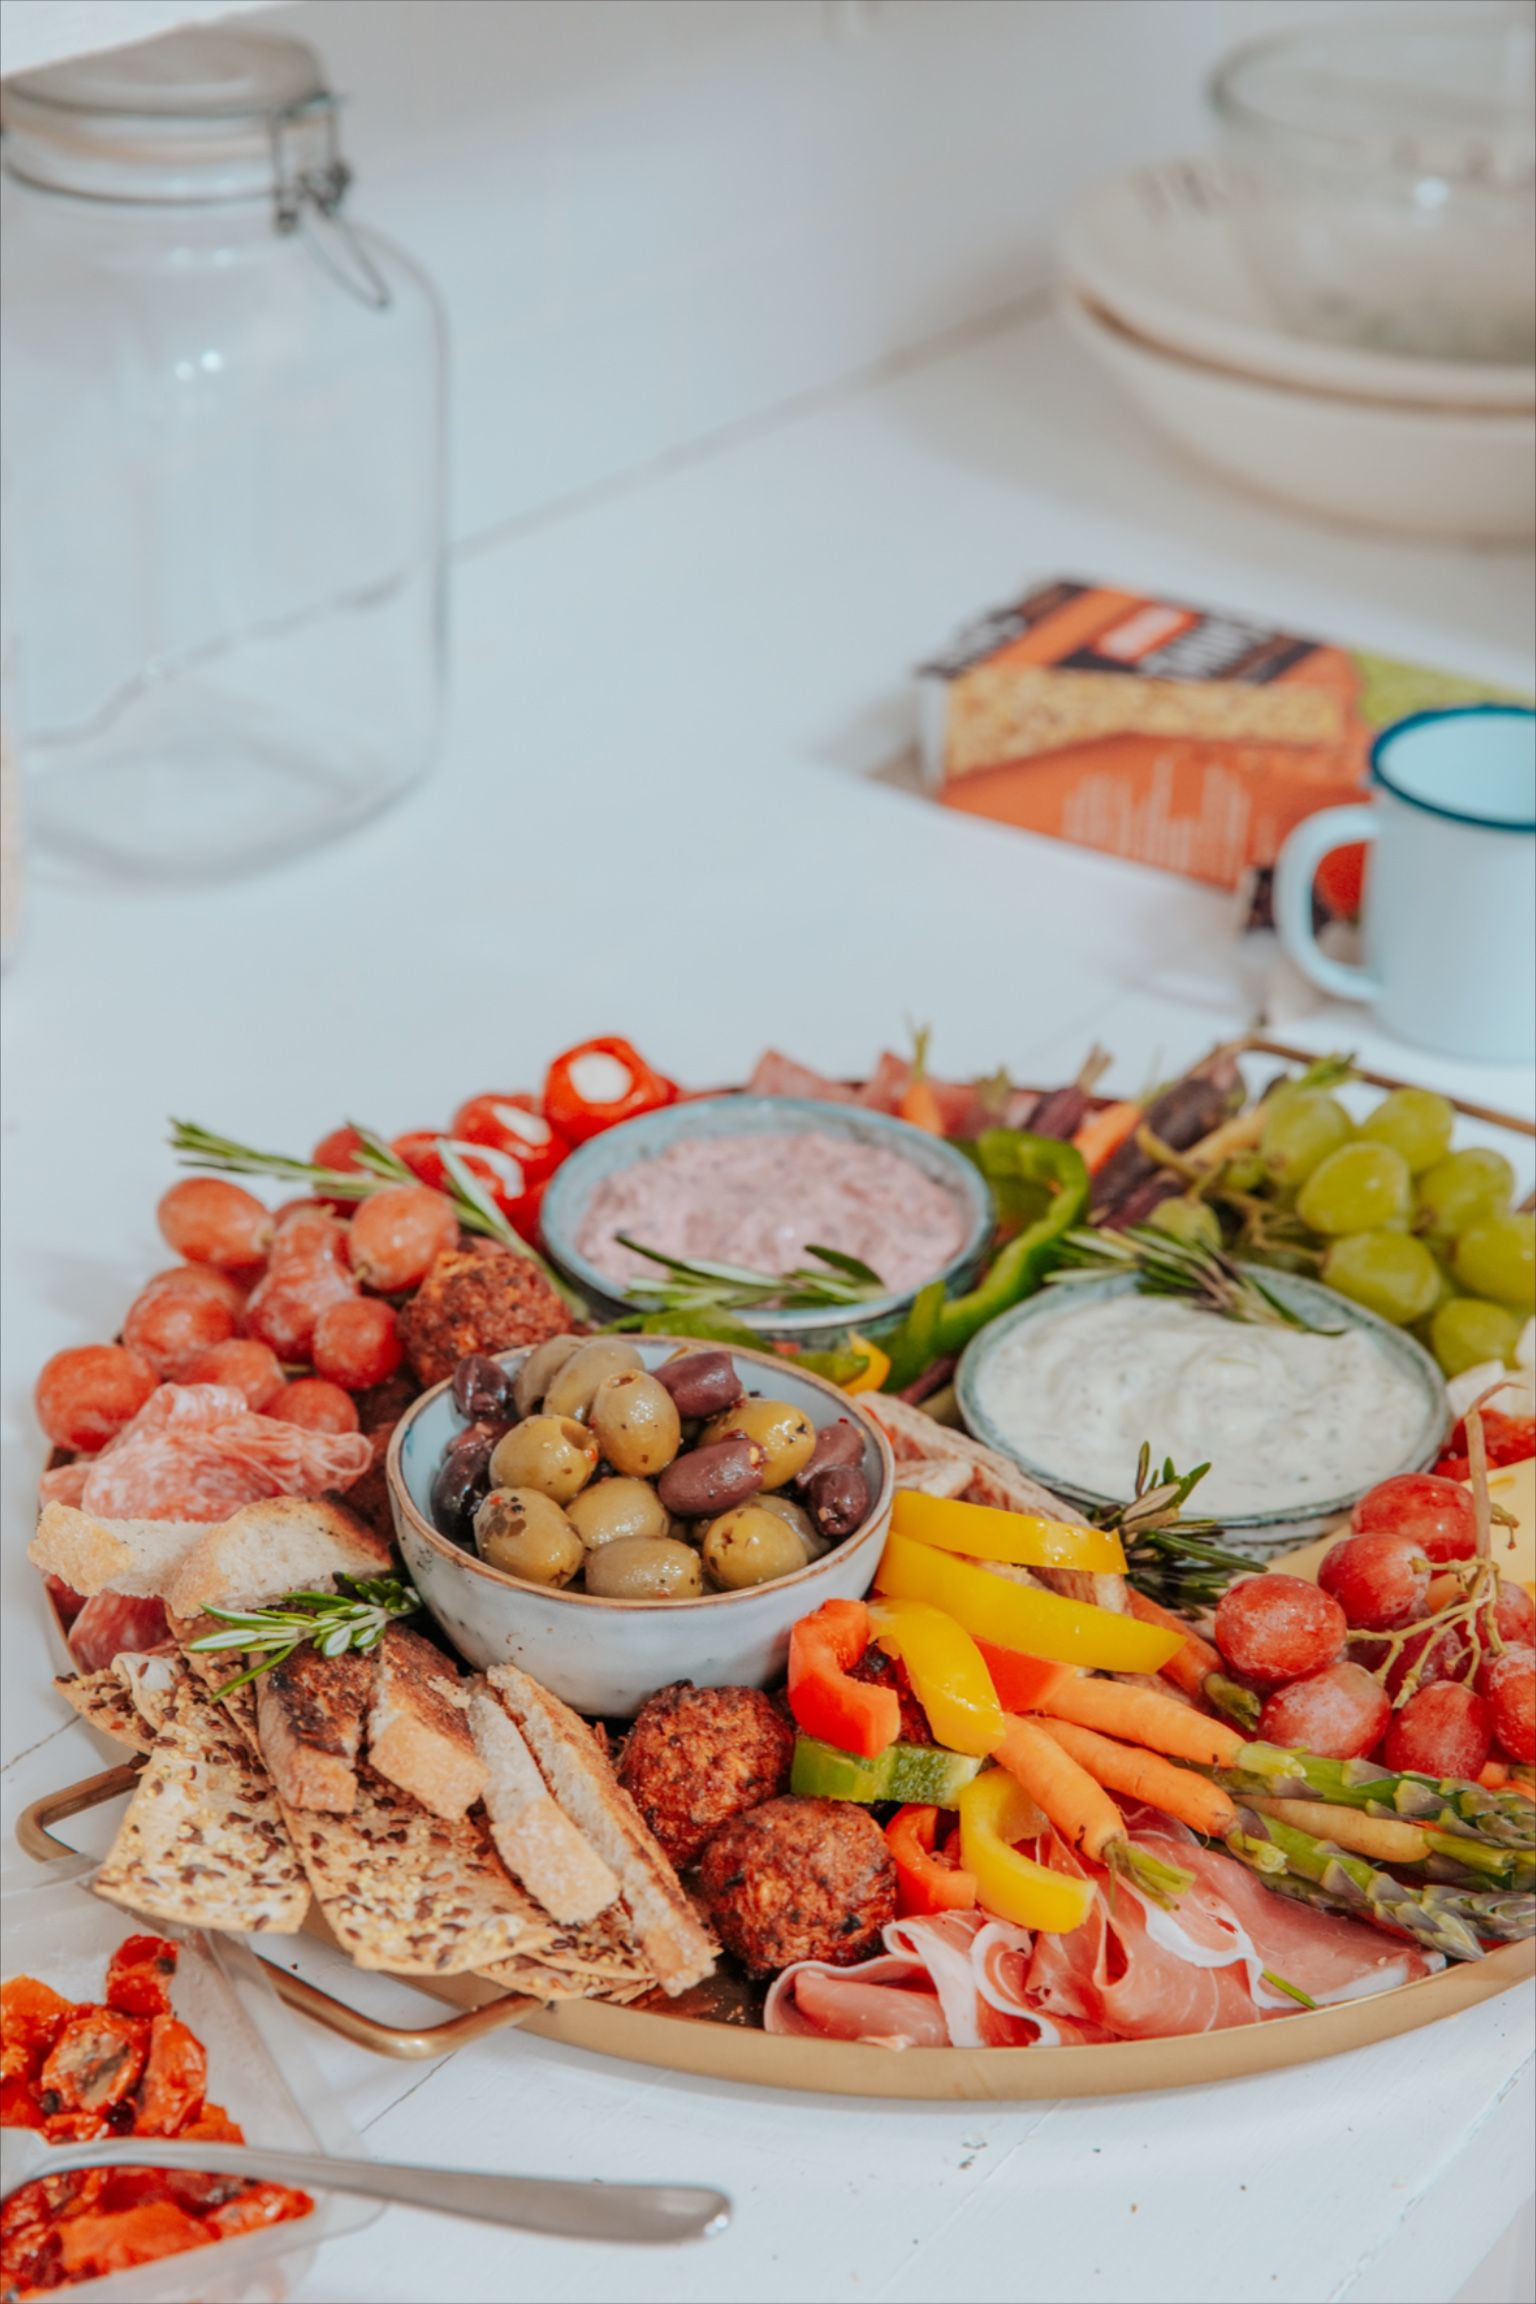 Bursting with flavours from all over the world, mezze can just as easily be enjoyed as the main snack board supper itself, or an all-day grazing board, if you're no longer subscribing to the idea of breakfast, lunch and dinner.  #mezze #mezzeplatter #dinnerplans #platters #grazingplatters #deliciousfood #foodgoals #instafoodie #mezzeplatterrecipe #mezzeplatterveg #mezzeplatterforone #mezzeplatter #mezzeplatterideas #mezzerecipes #mezzeboard #mezzeplatterideasentertaining